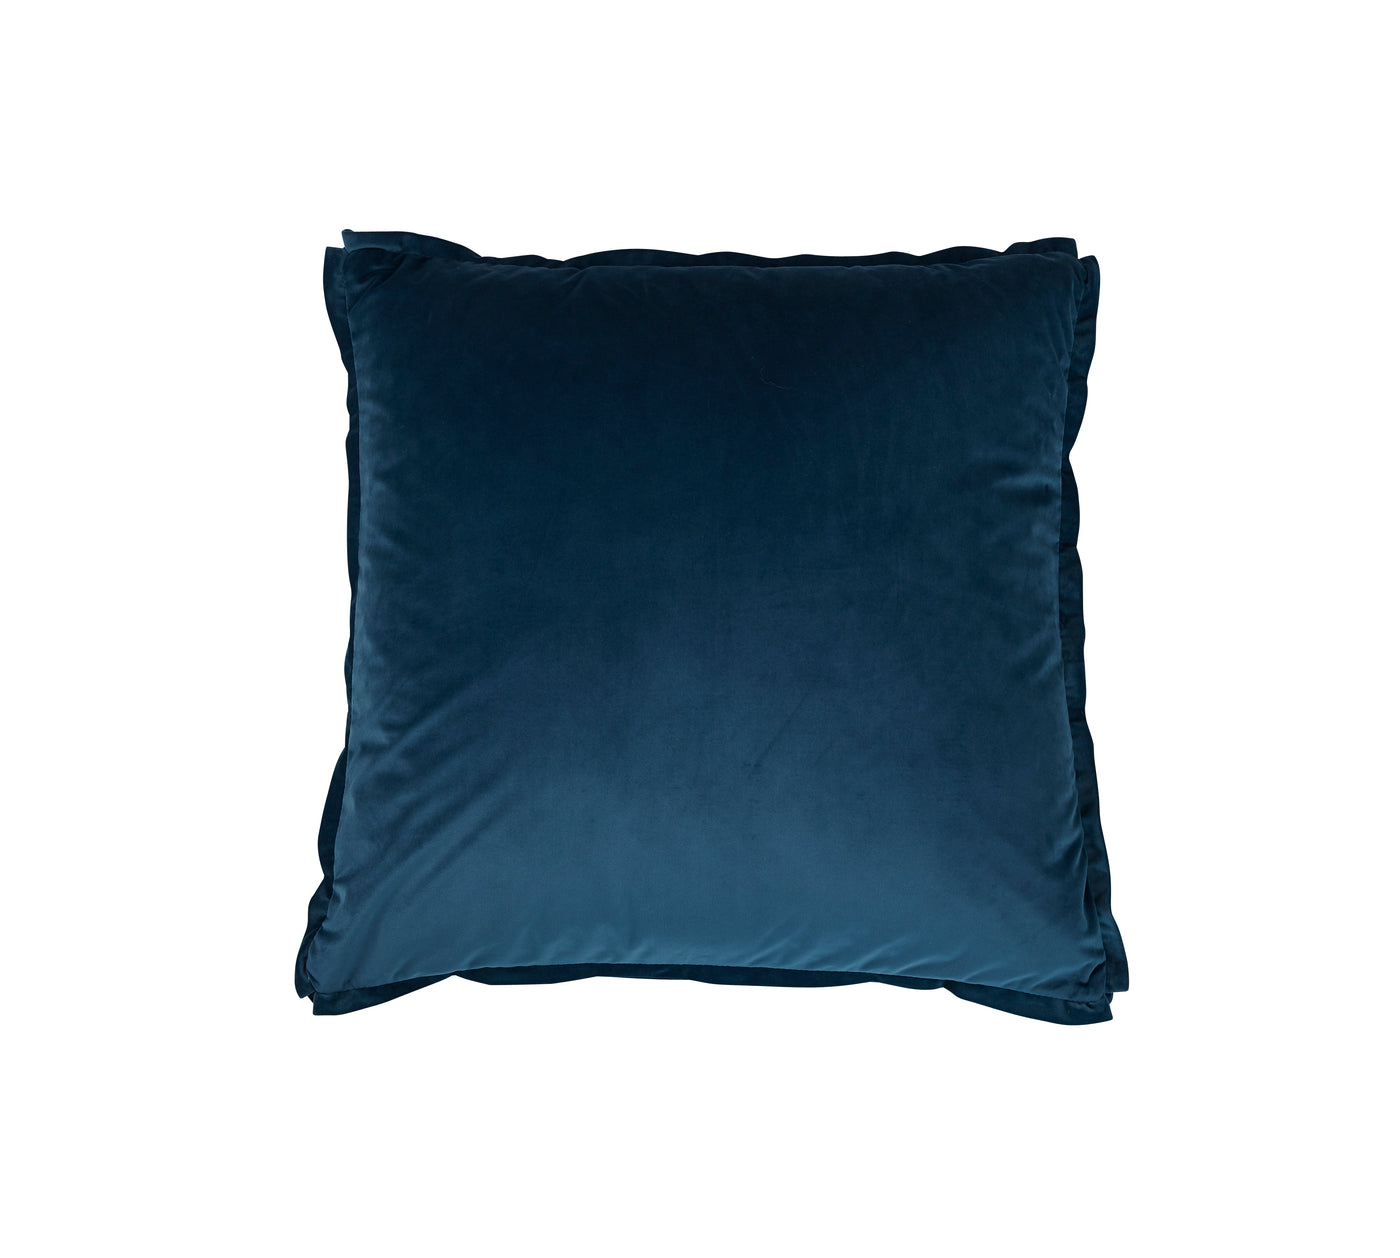 Velvet Pillow Square Dark Blue